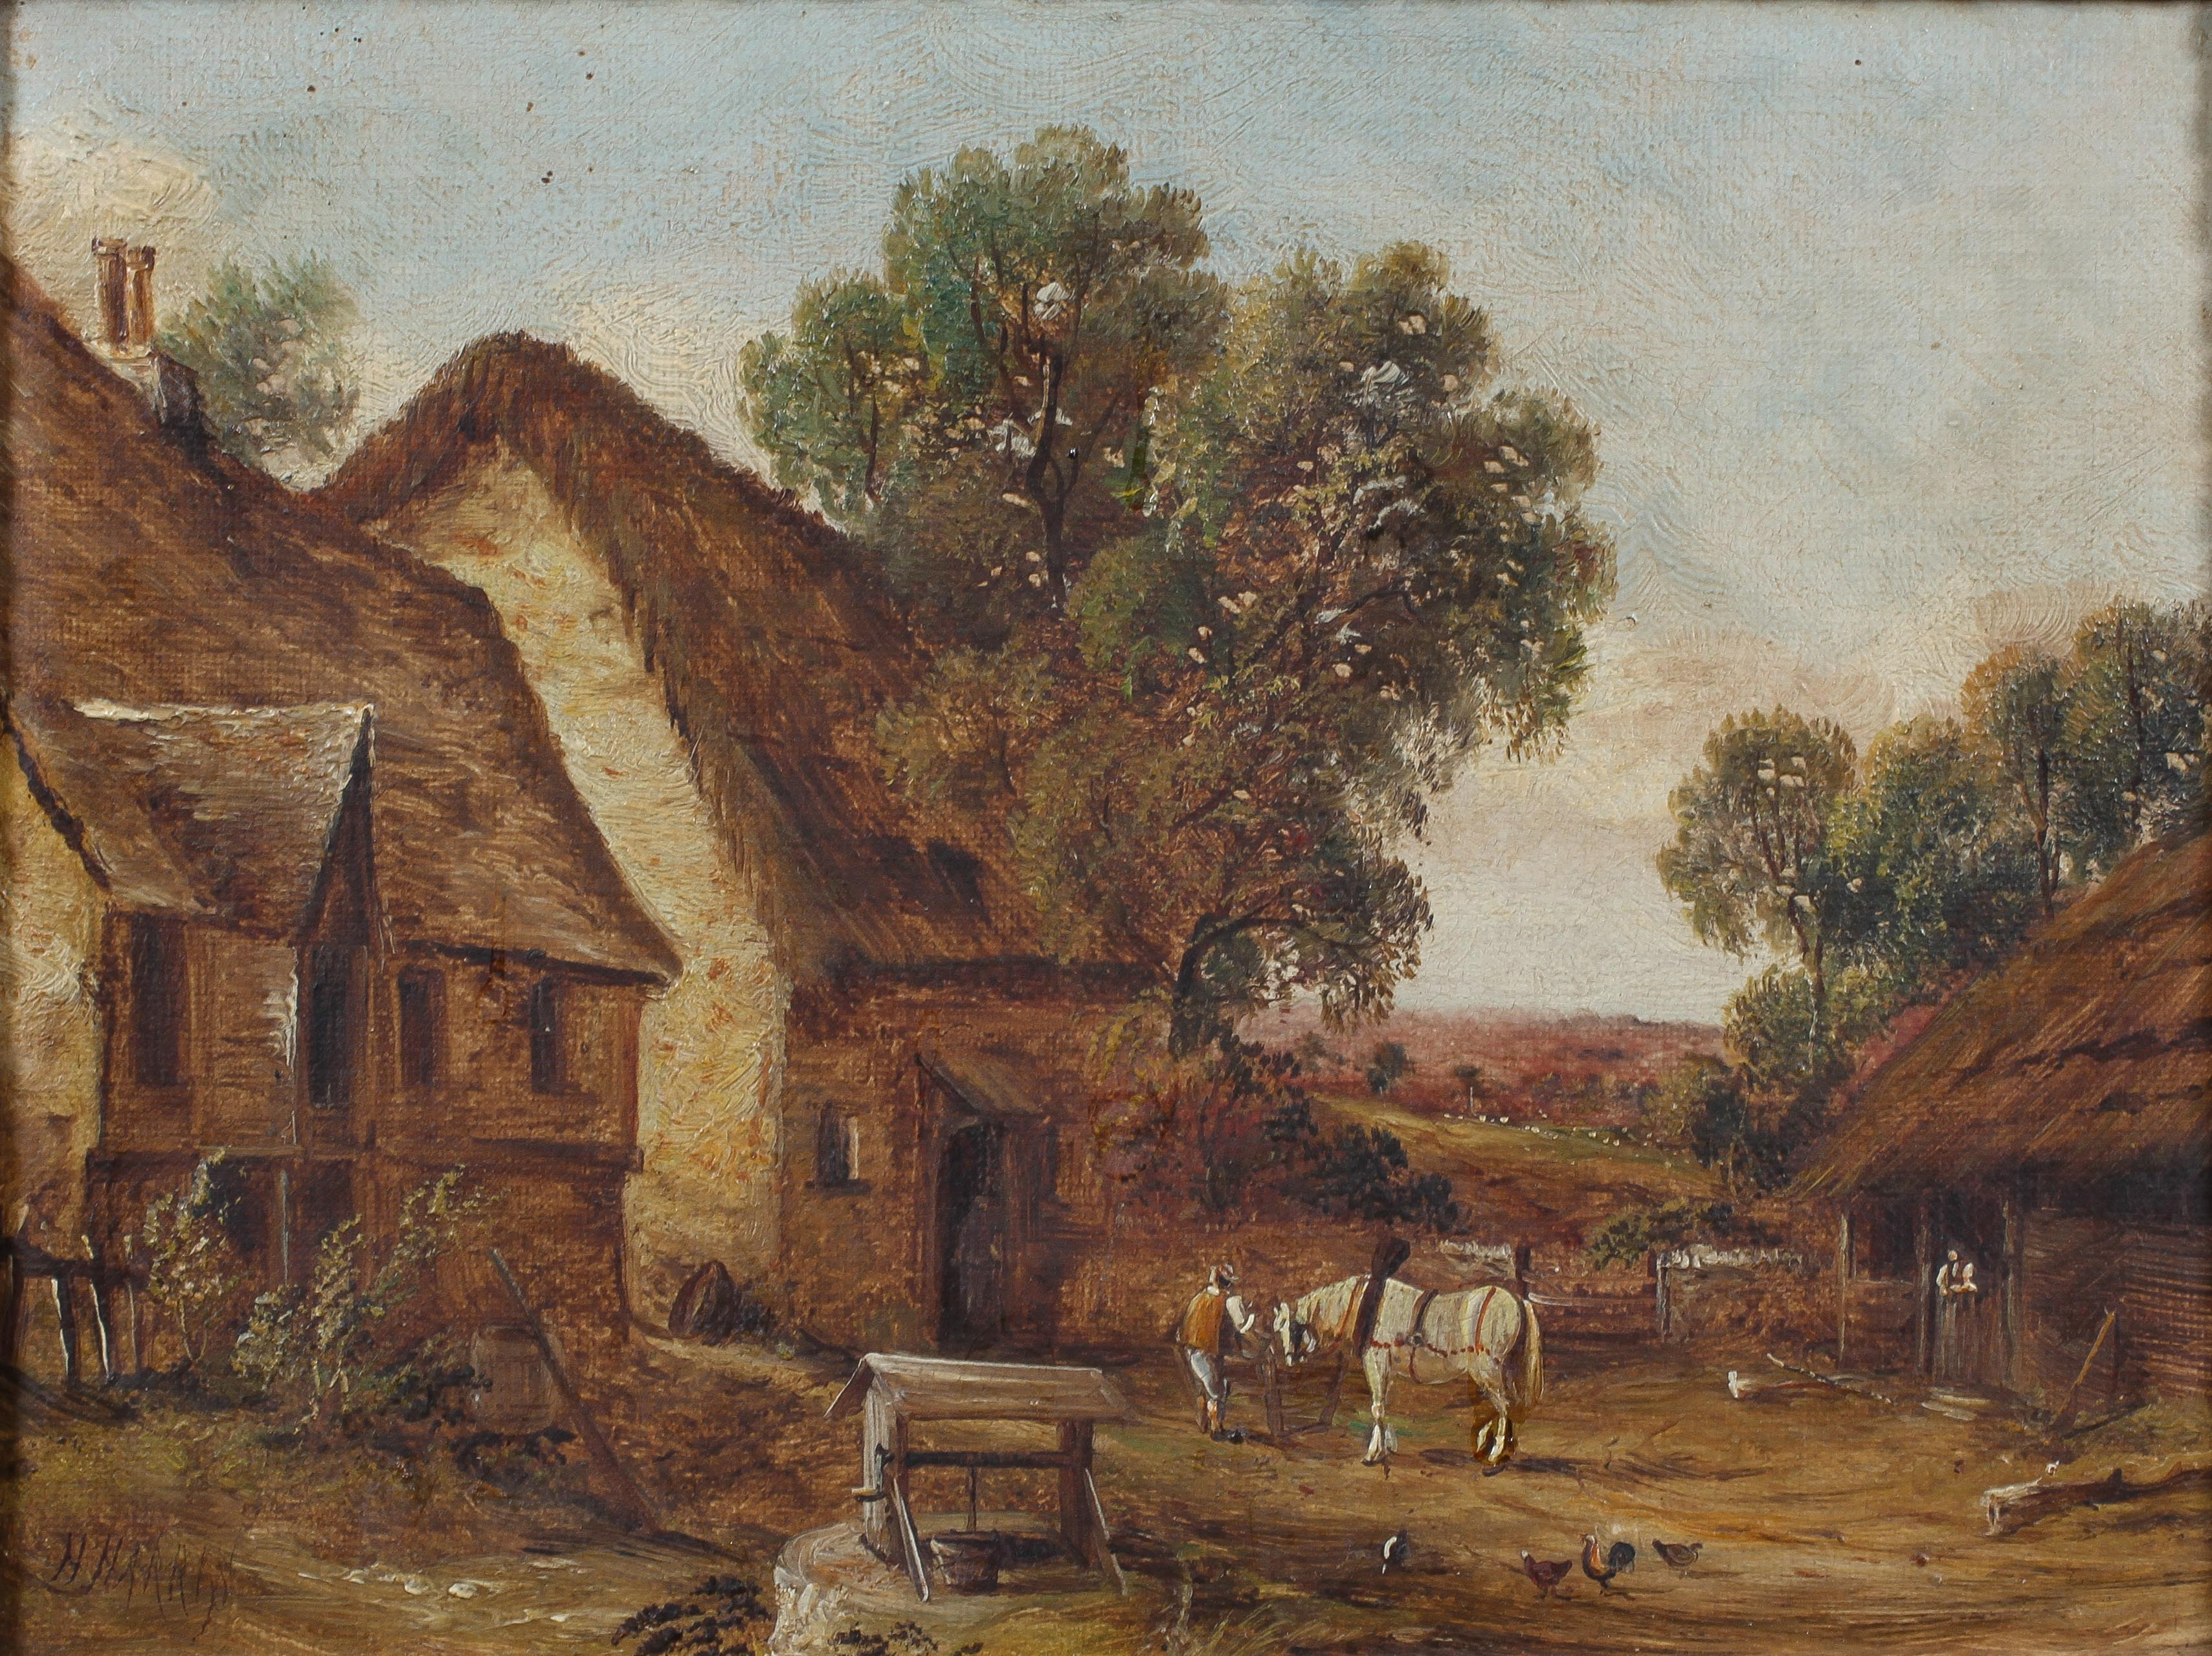 H Harris, three rural landscapes, oil on canvas, within giltwood frames, each signed, - Image 4 of 4